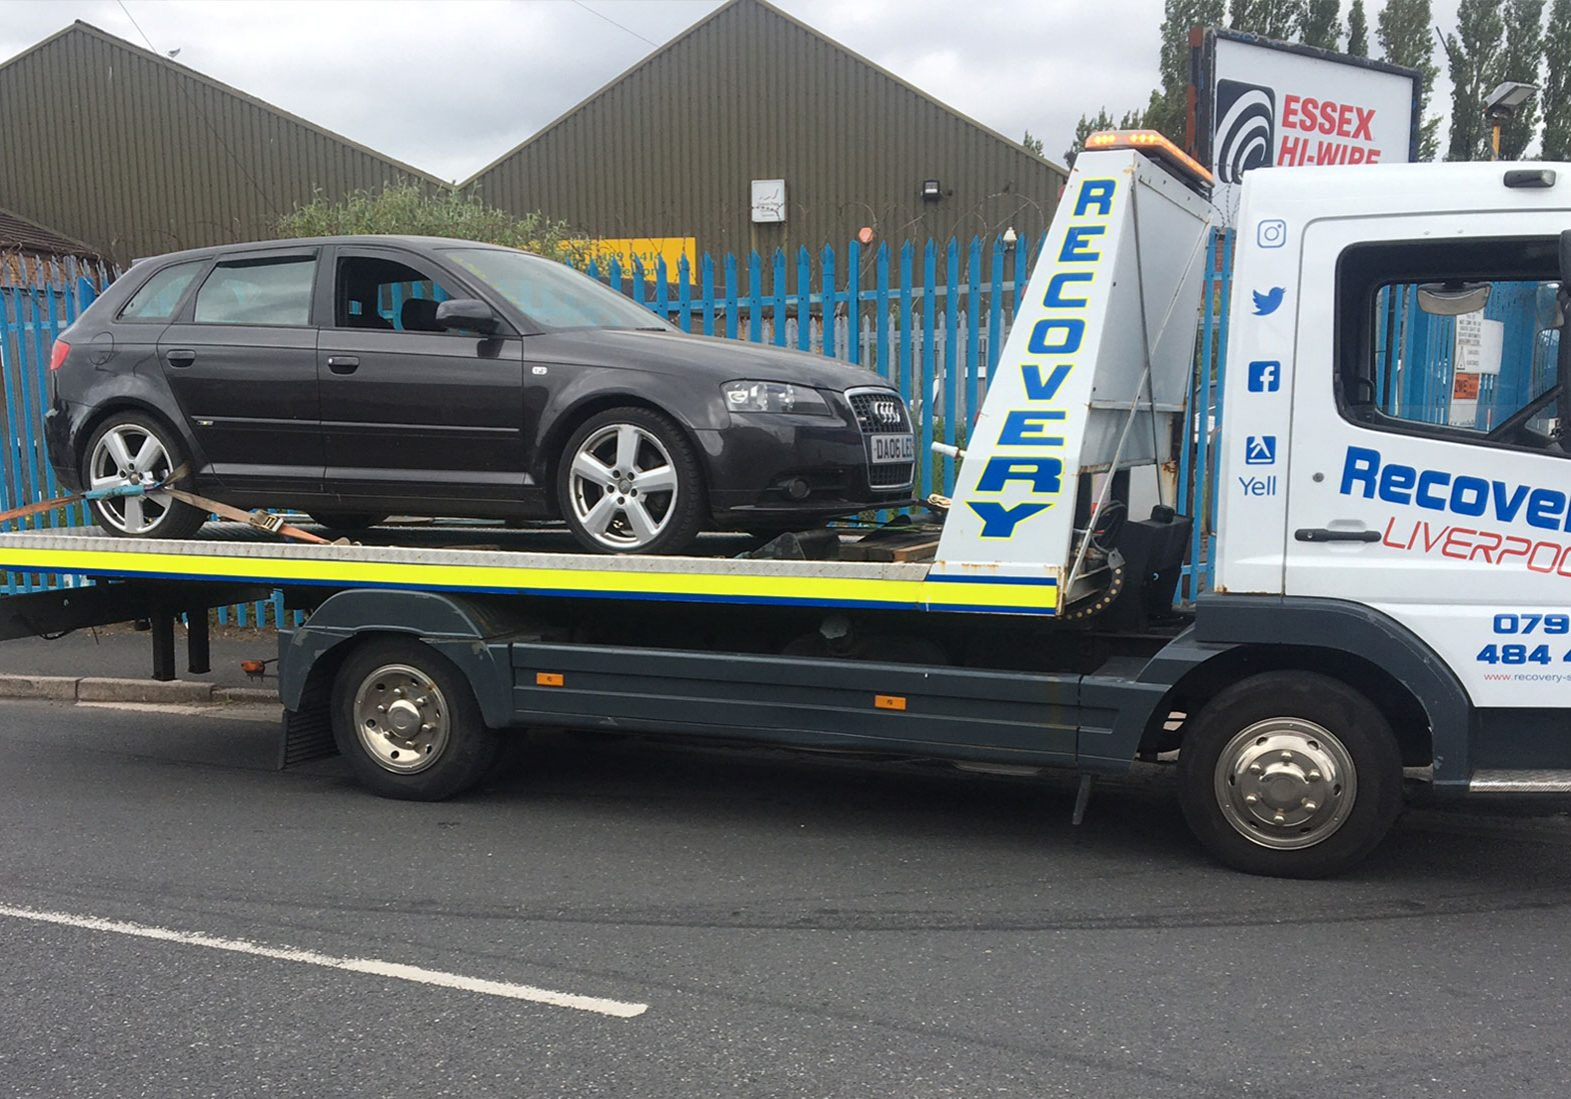 audi being recovered